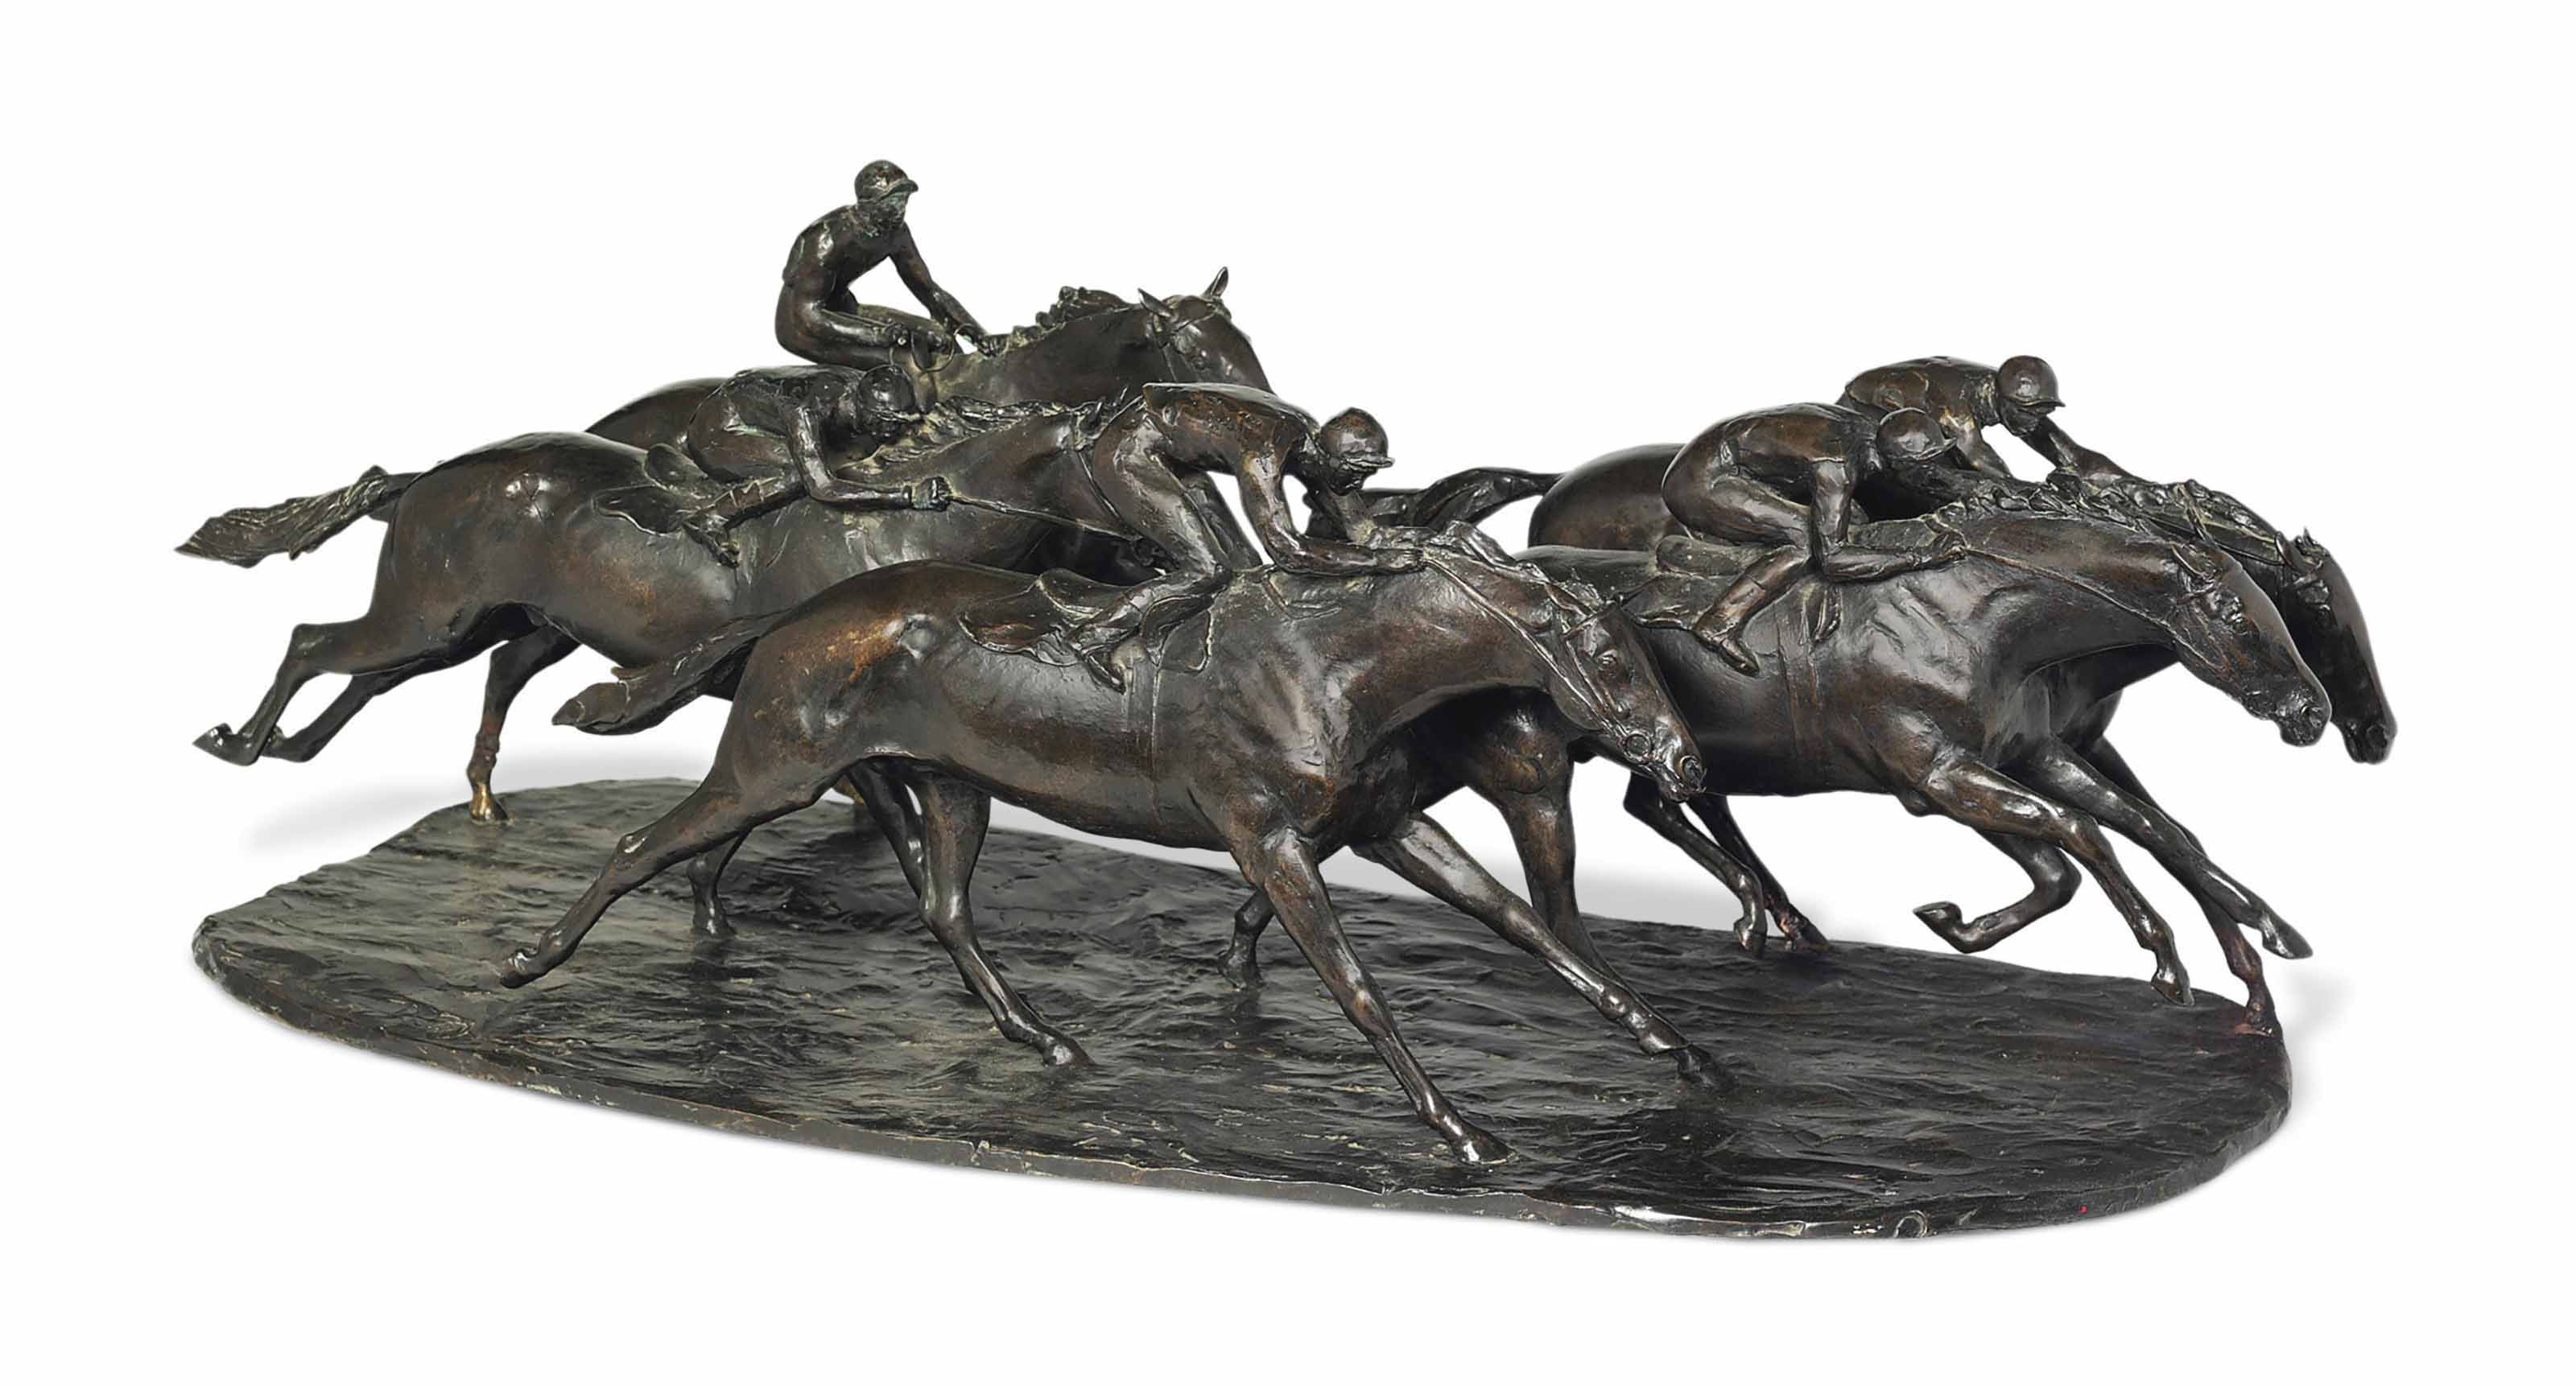 A group of five racehorses